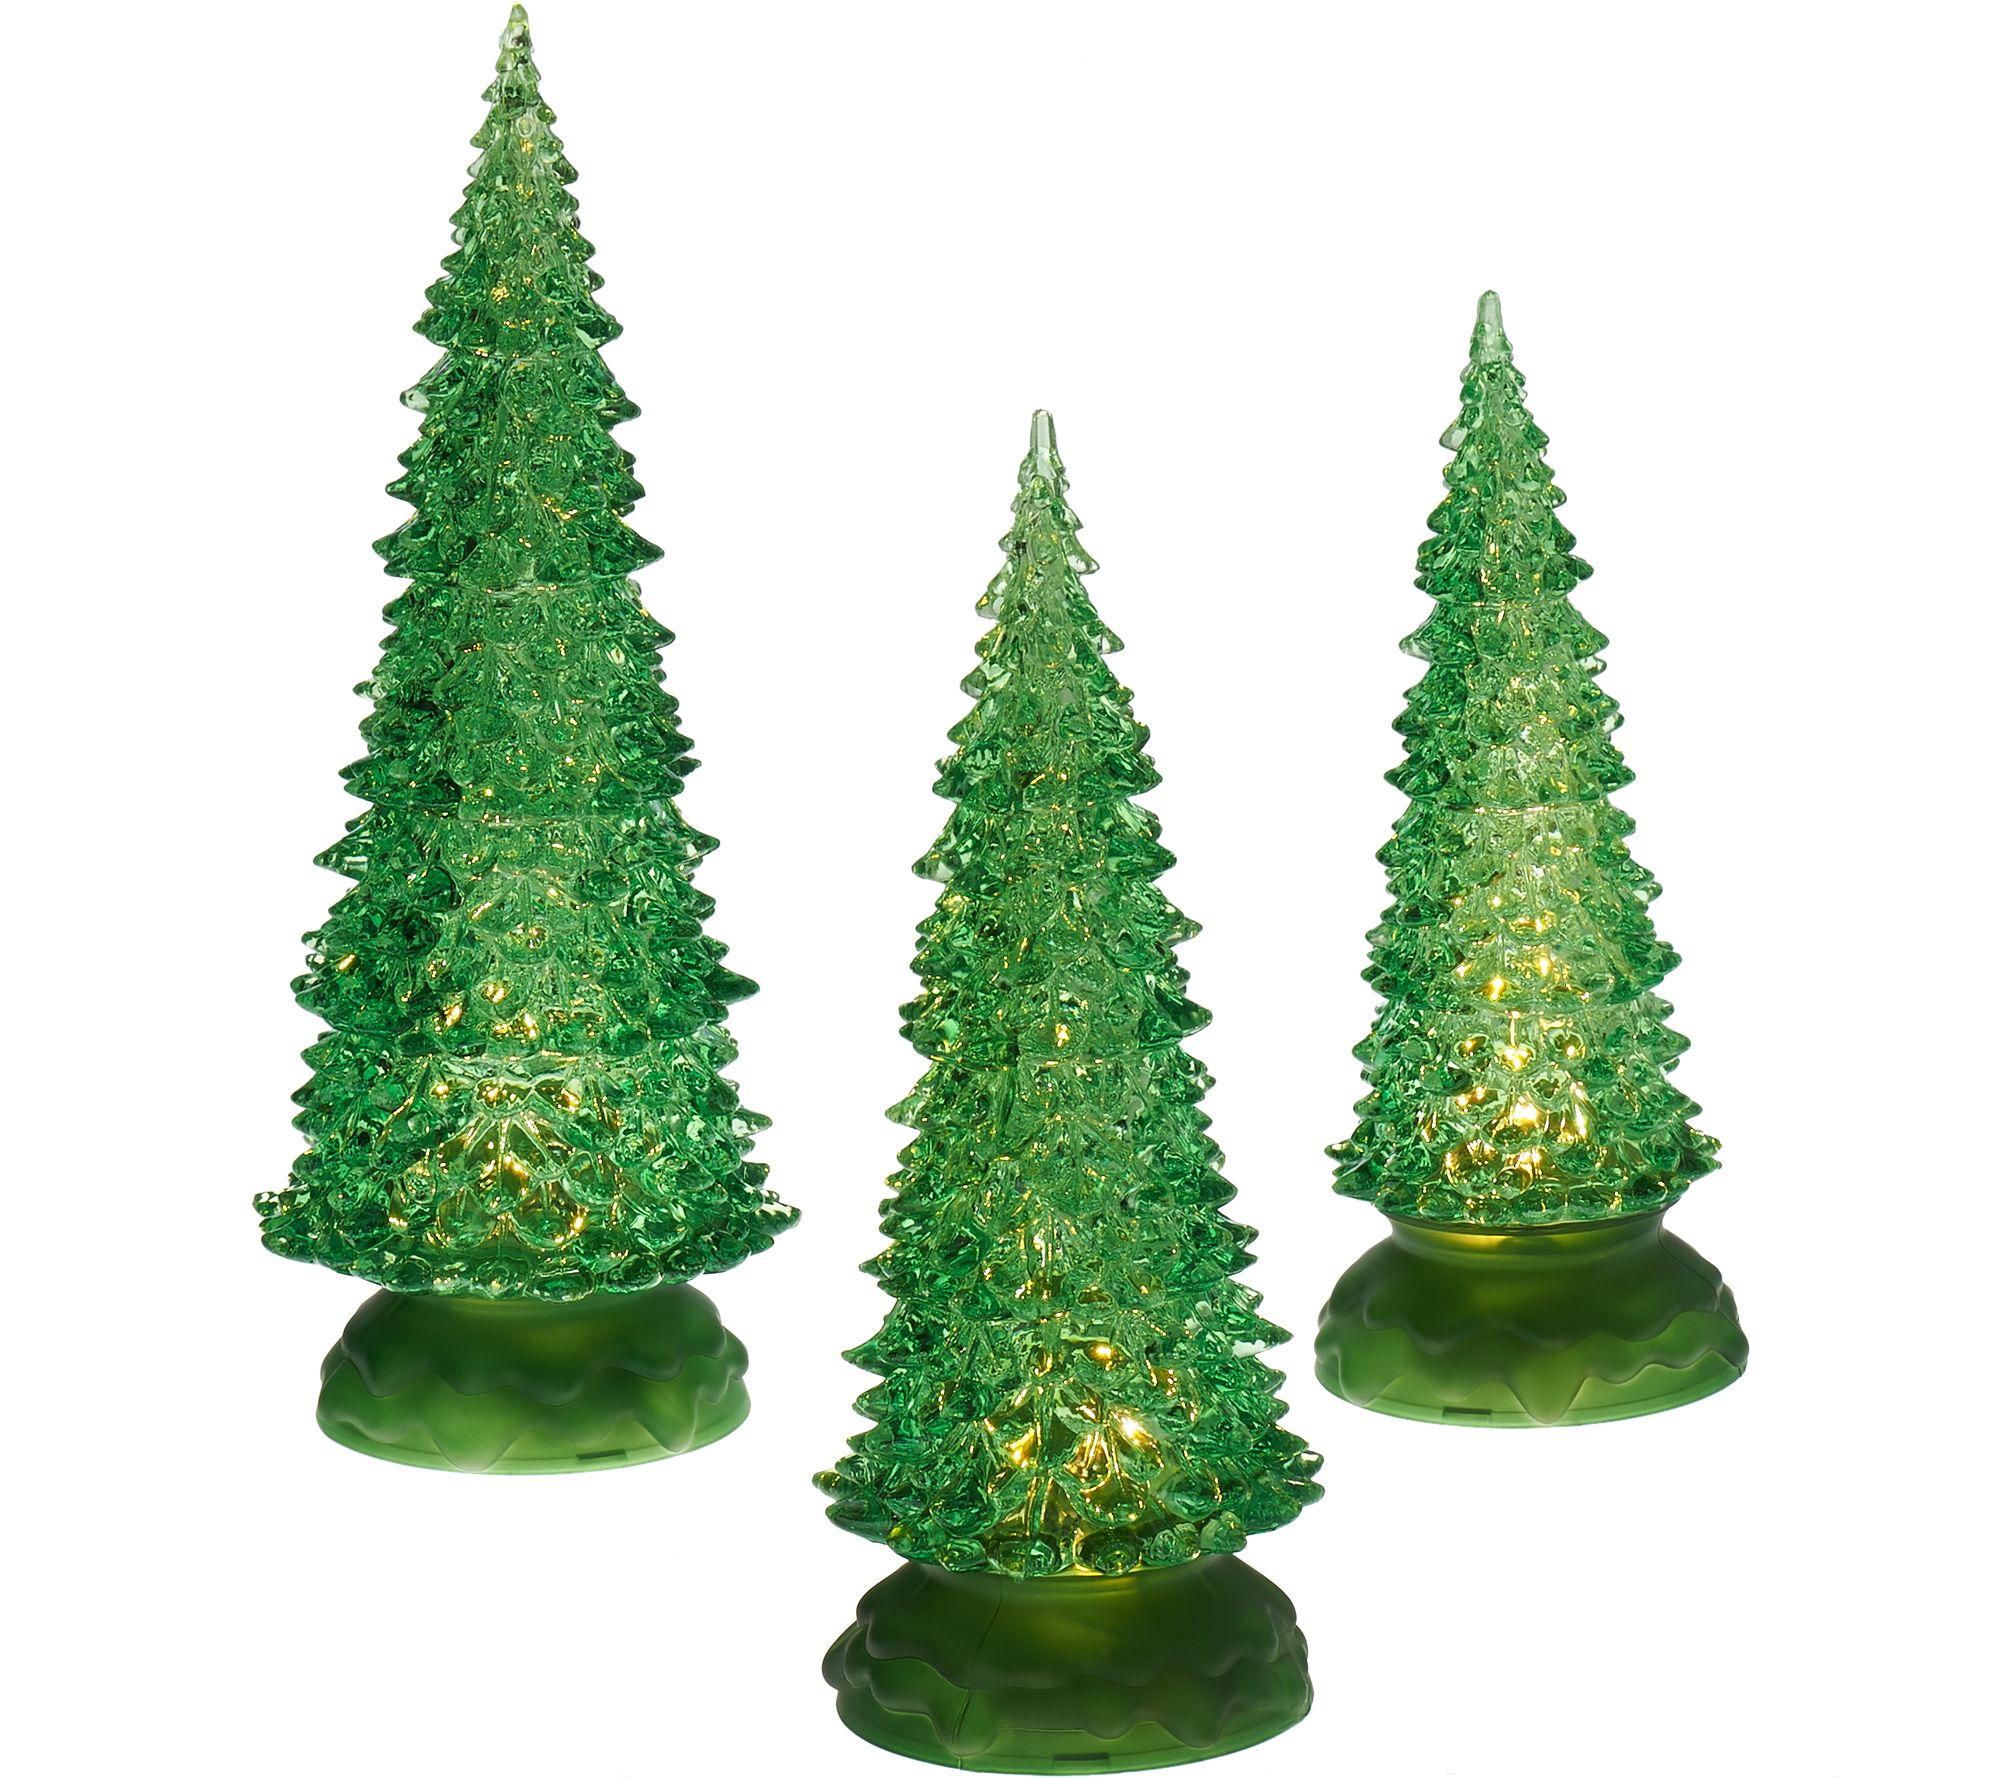 Set of 3 Illuminated Sparkling Trees by Valerie - Page 1 — QVC.com